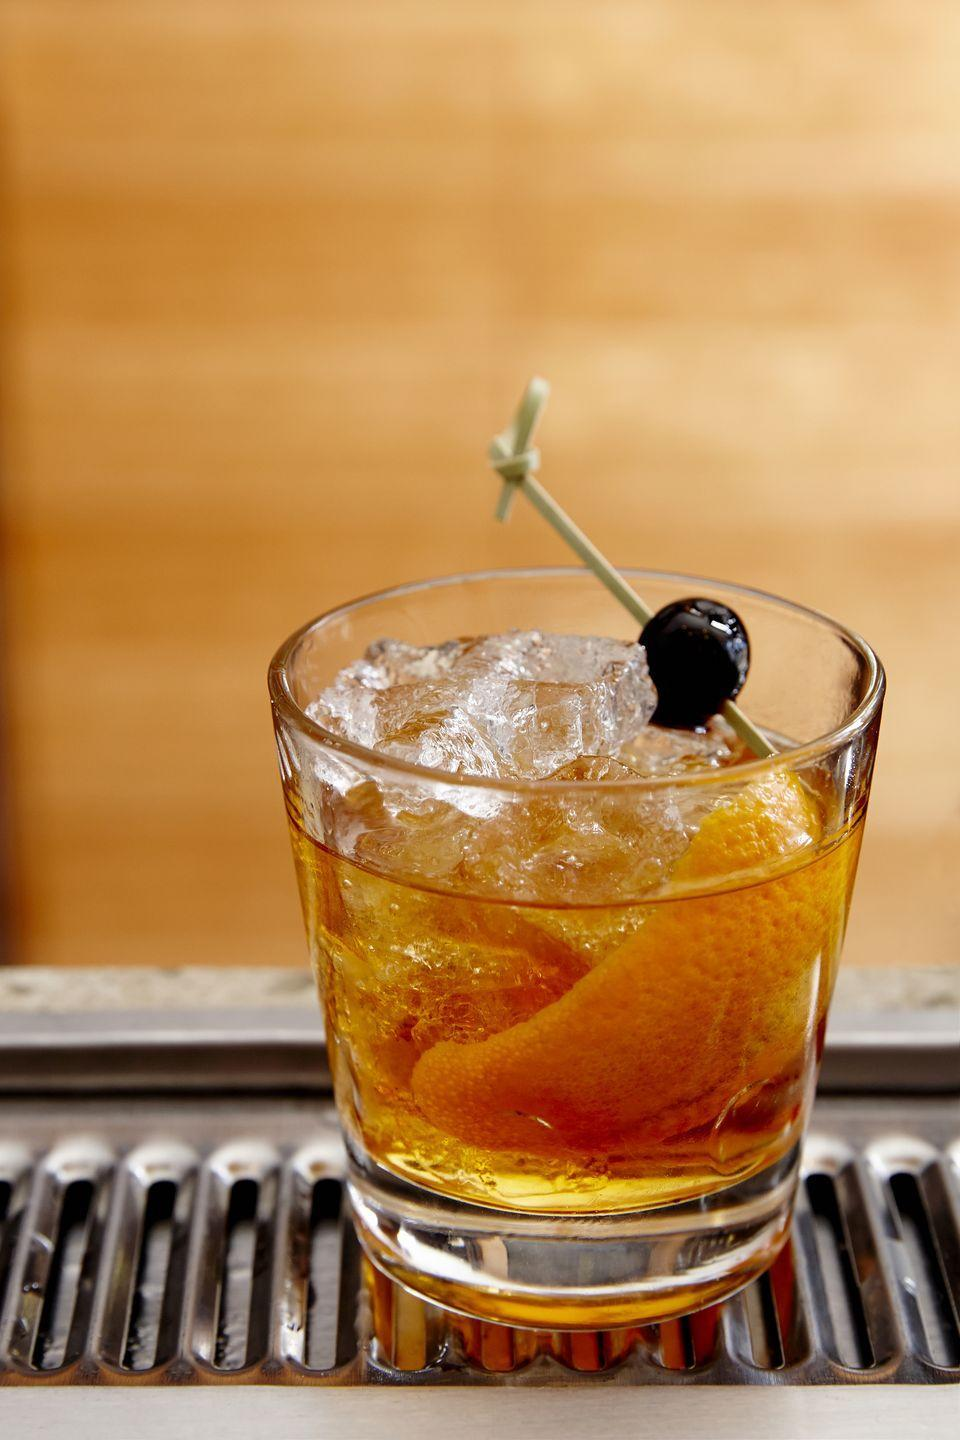 "<p>An experimental cocktail made by muddling sugar with bitters, adding whiskey and garnishing with a twist of citrus rind, <a href=""https://www.delish.com/uk/cocktails-drinks/a30927856/old-fashioned/"" rel=""nofollow noopener"" target=""_blank"" data-ylk=""slk:Old Fashioned"" class=""link rapid-noclick-resp"">Old Fashioned</a> drinkers were traditionally thought to be risk takers. Dating back to the 1800's, the Old Fashioned was a popular drink served at Gentlemen's Clubs and is often associated to an aristocratic and more mature drinker. Those who pick an Old Fashioned today are said to enjoy a more traditional way of life but still have an air of risk and challenge to their personality.</p>"